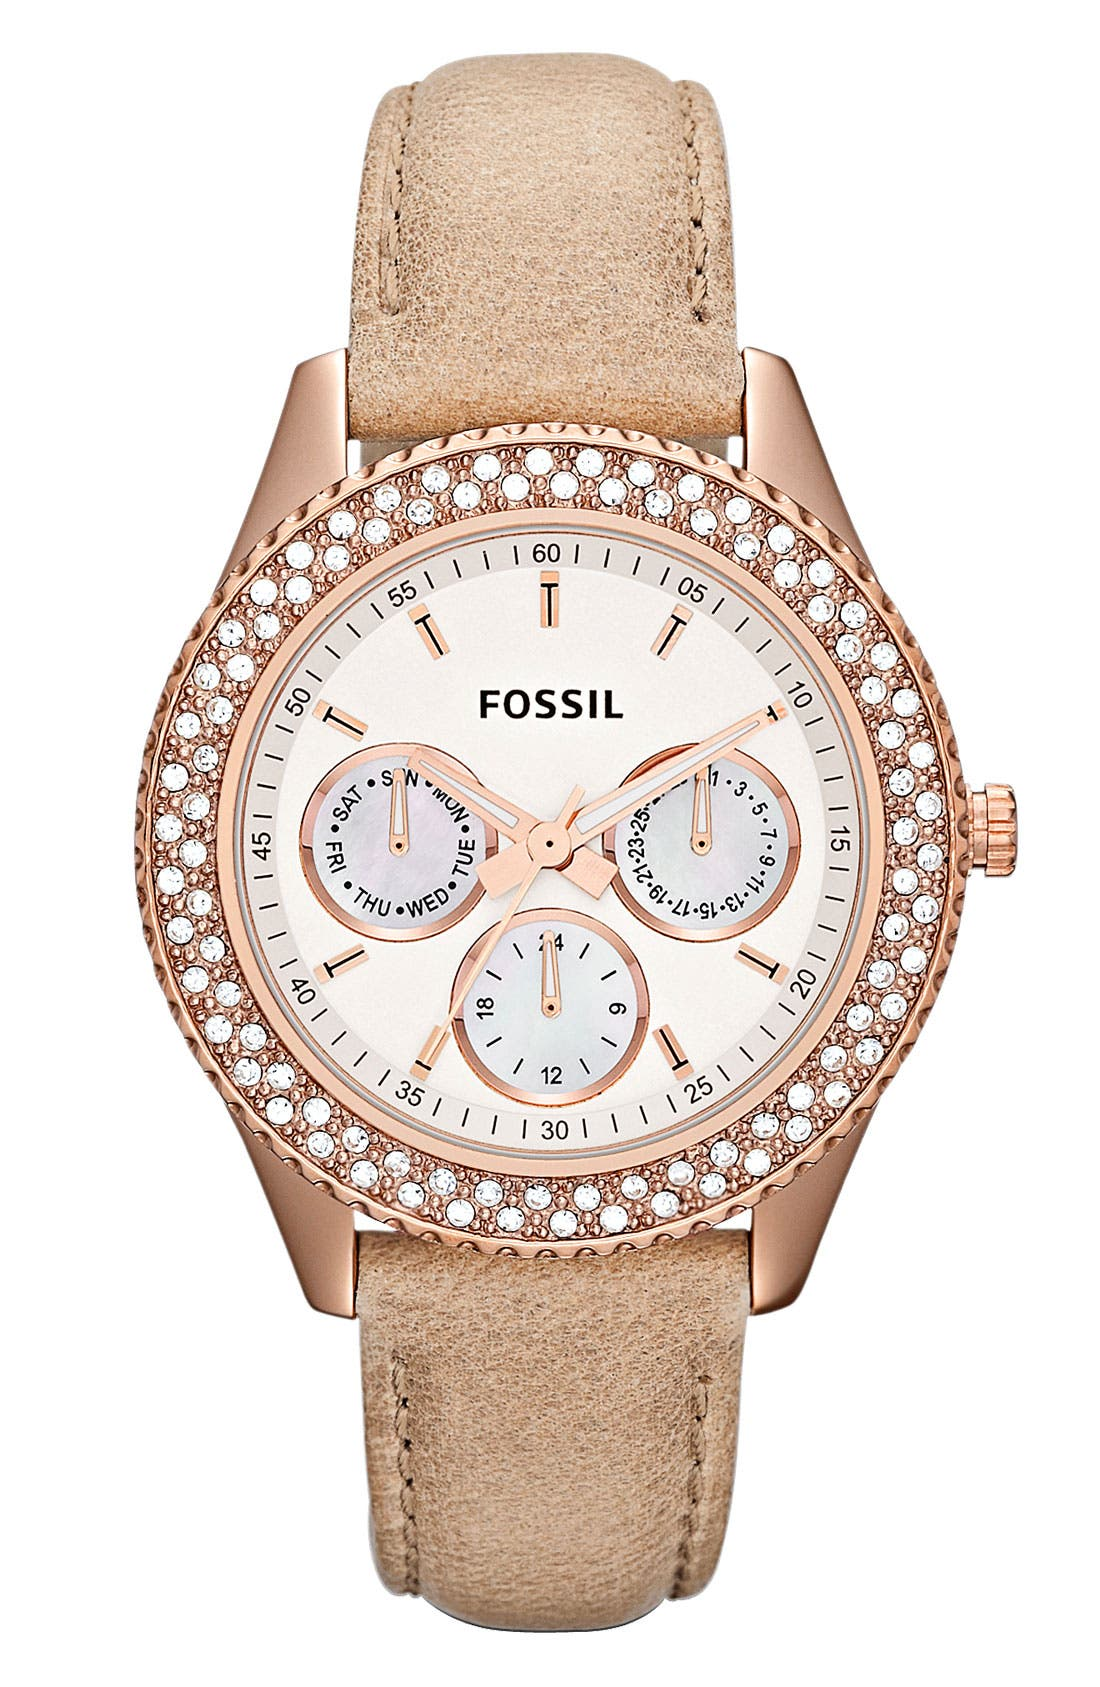 Main Image - Fossil 'Stella' Crystal Bezel Leather Strap Watch, 37mm